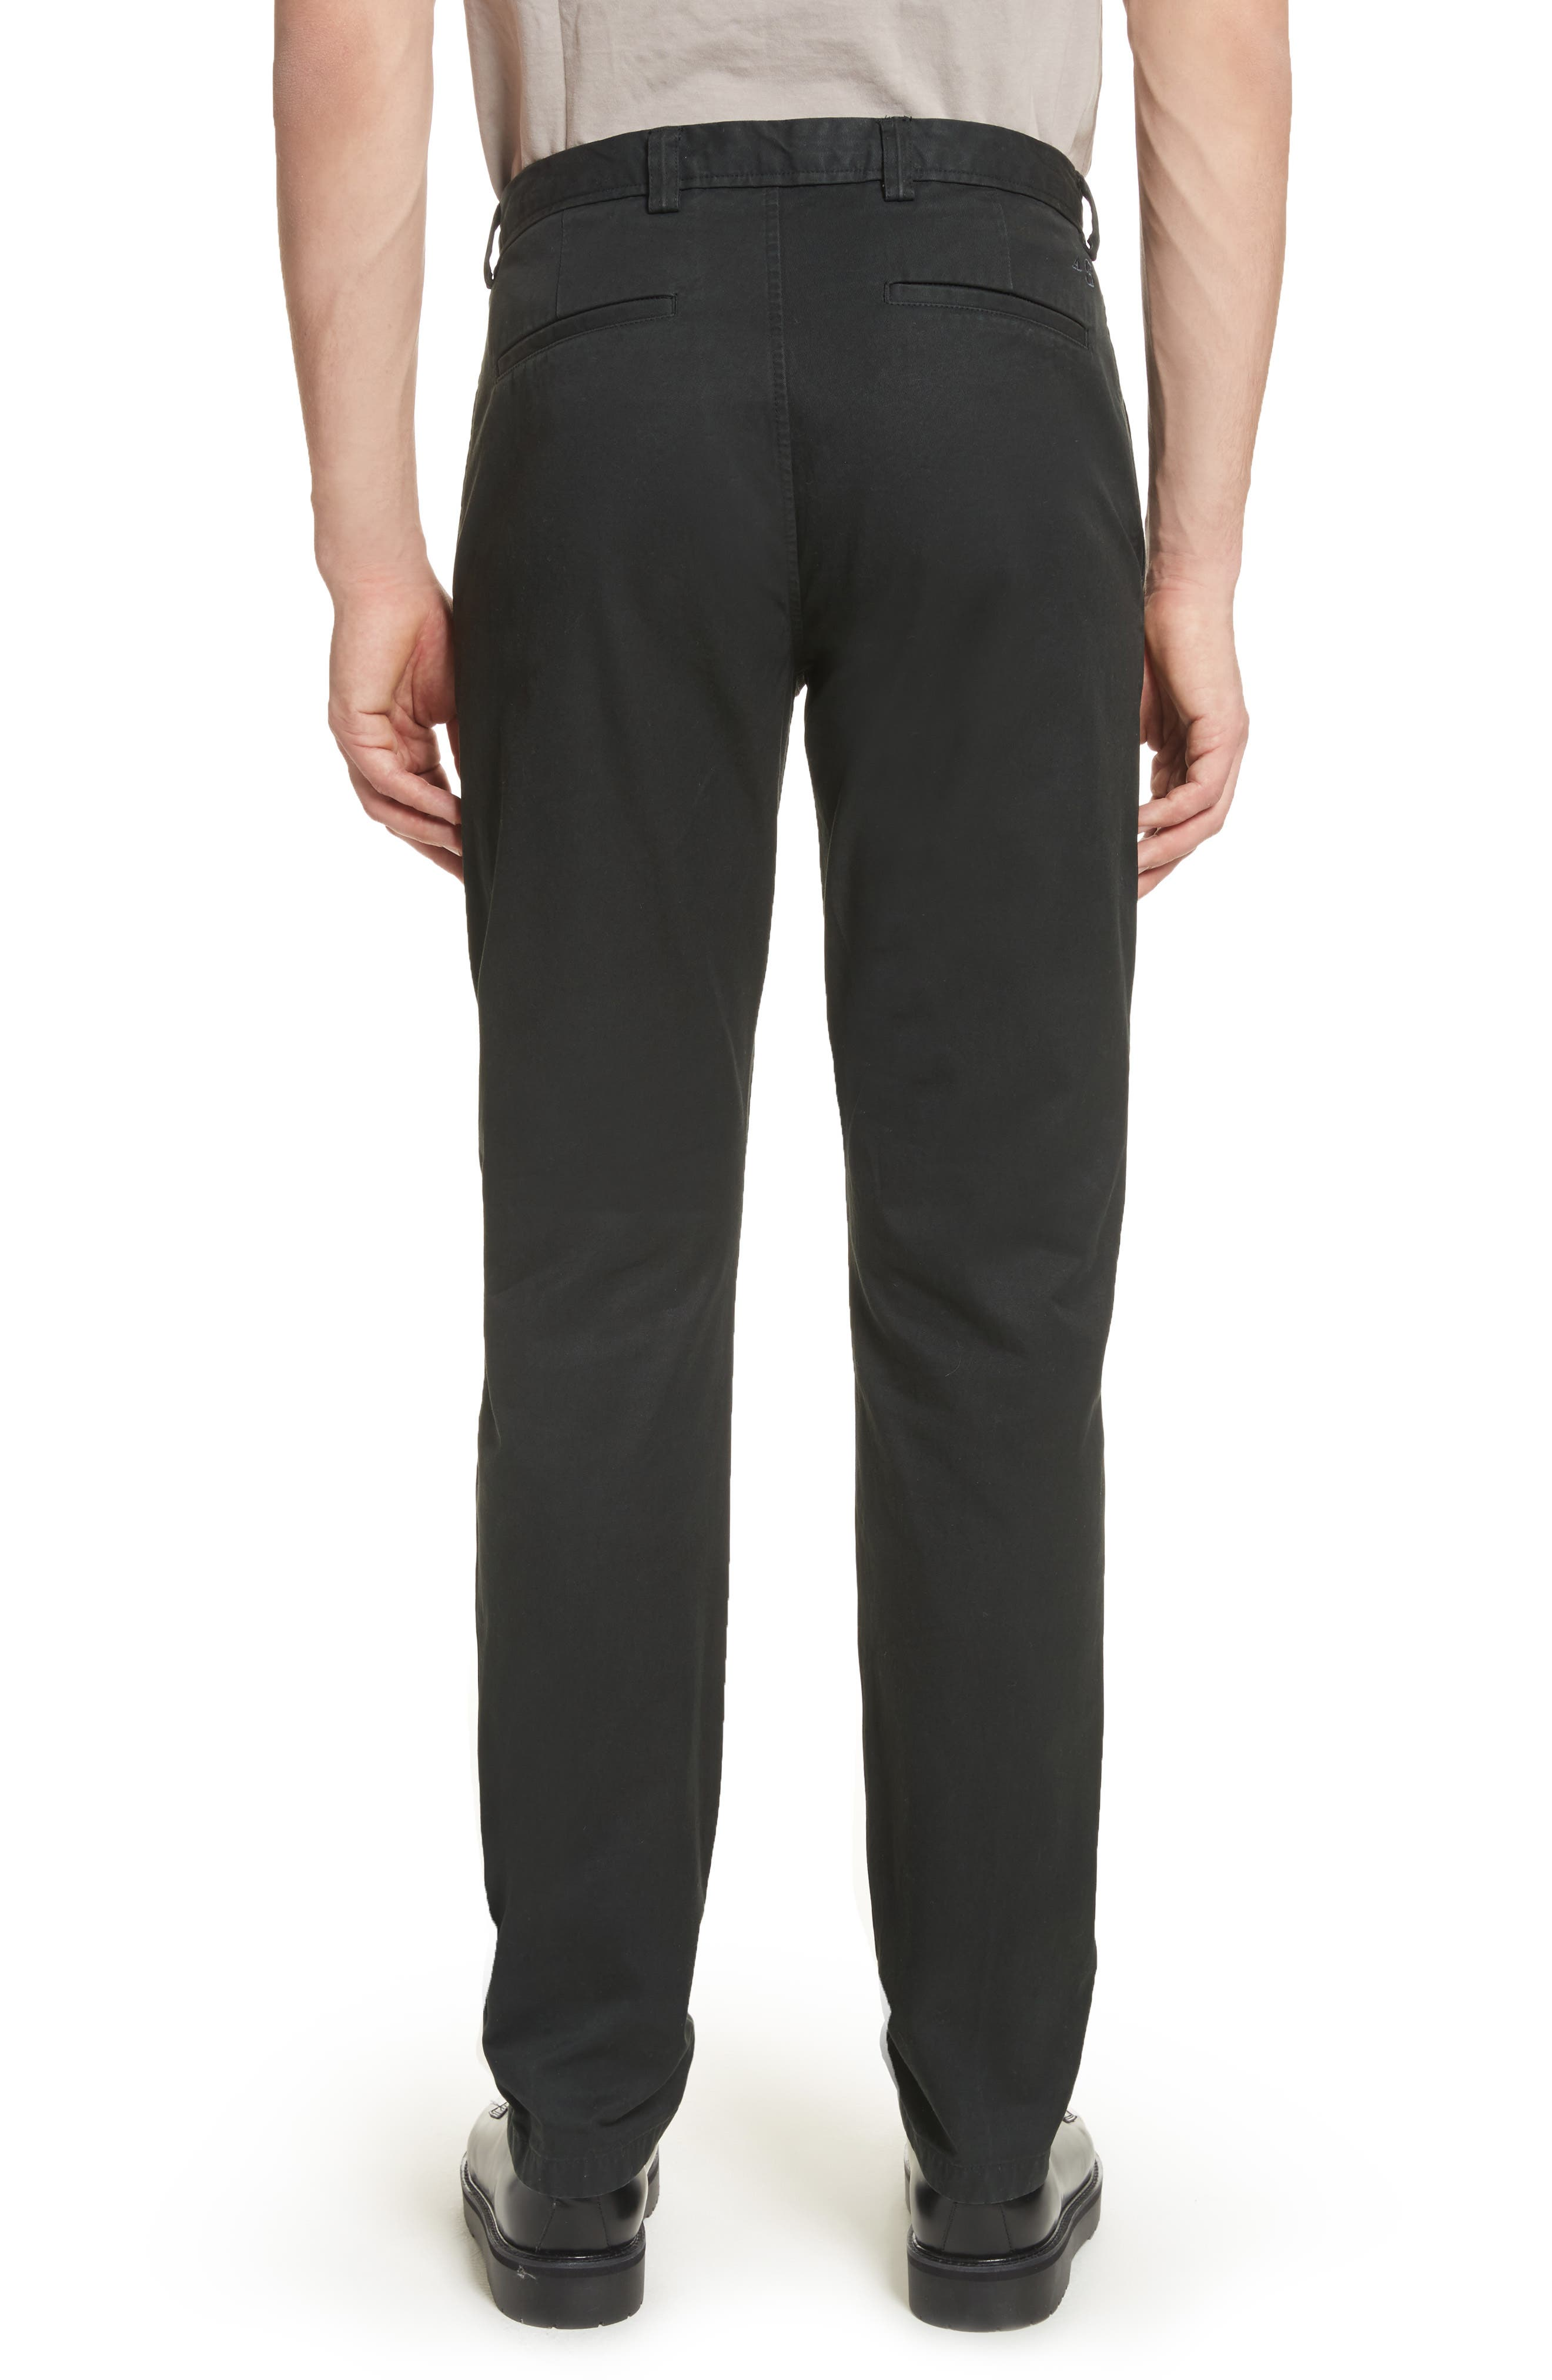 Isher Chinos,                             Alternate thumbnail 2, color,                             COAL BLACK